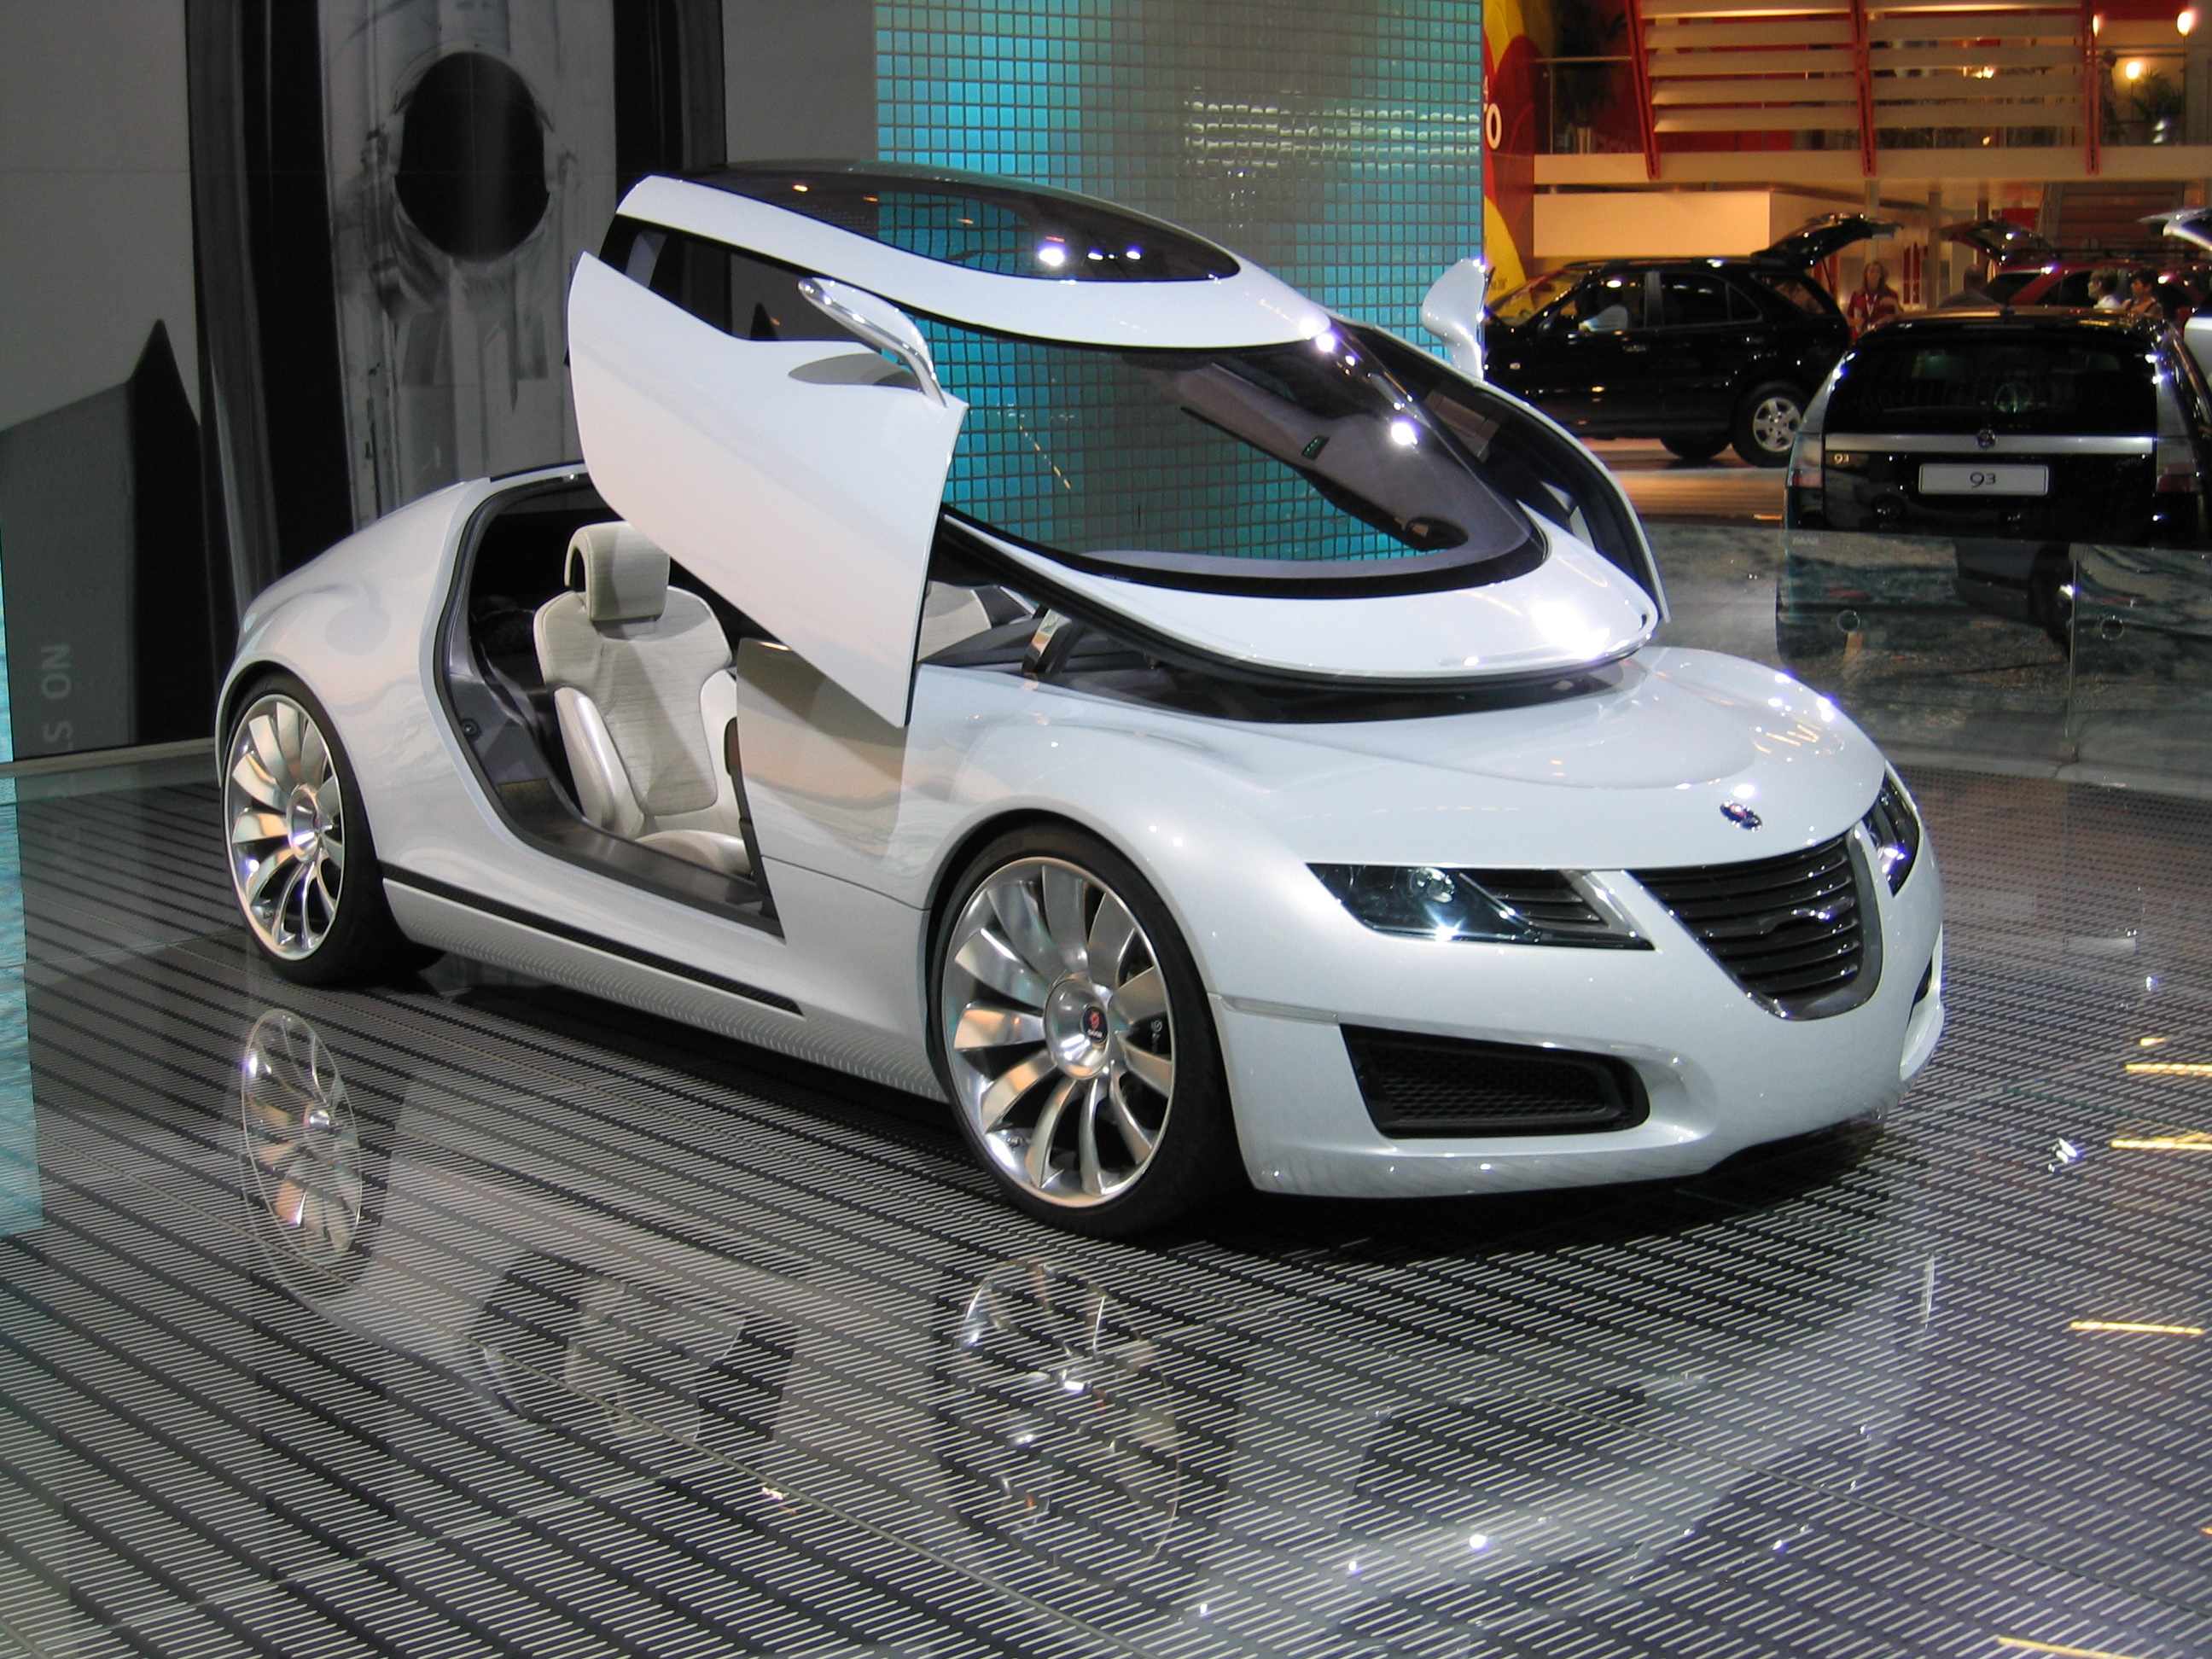 Concept cars in car shows